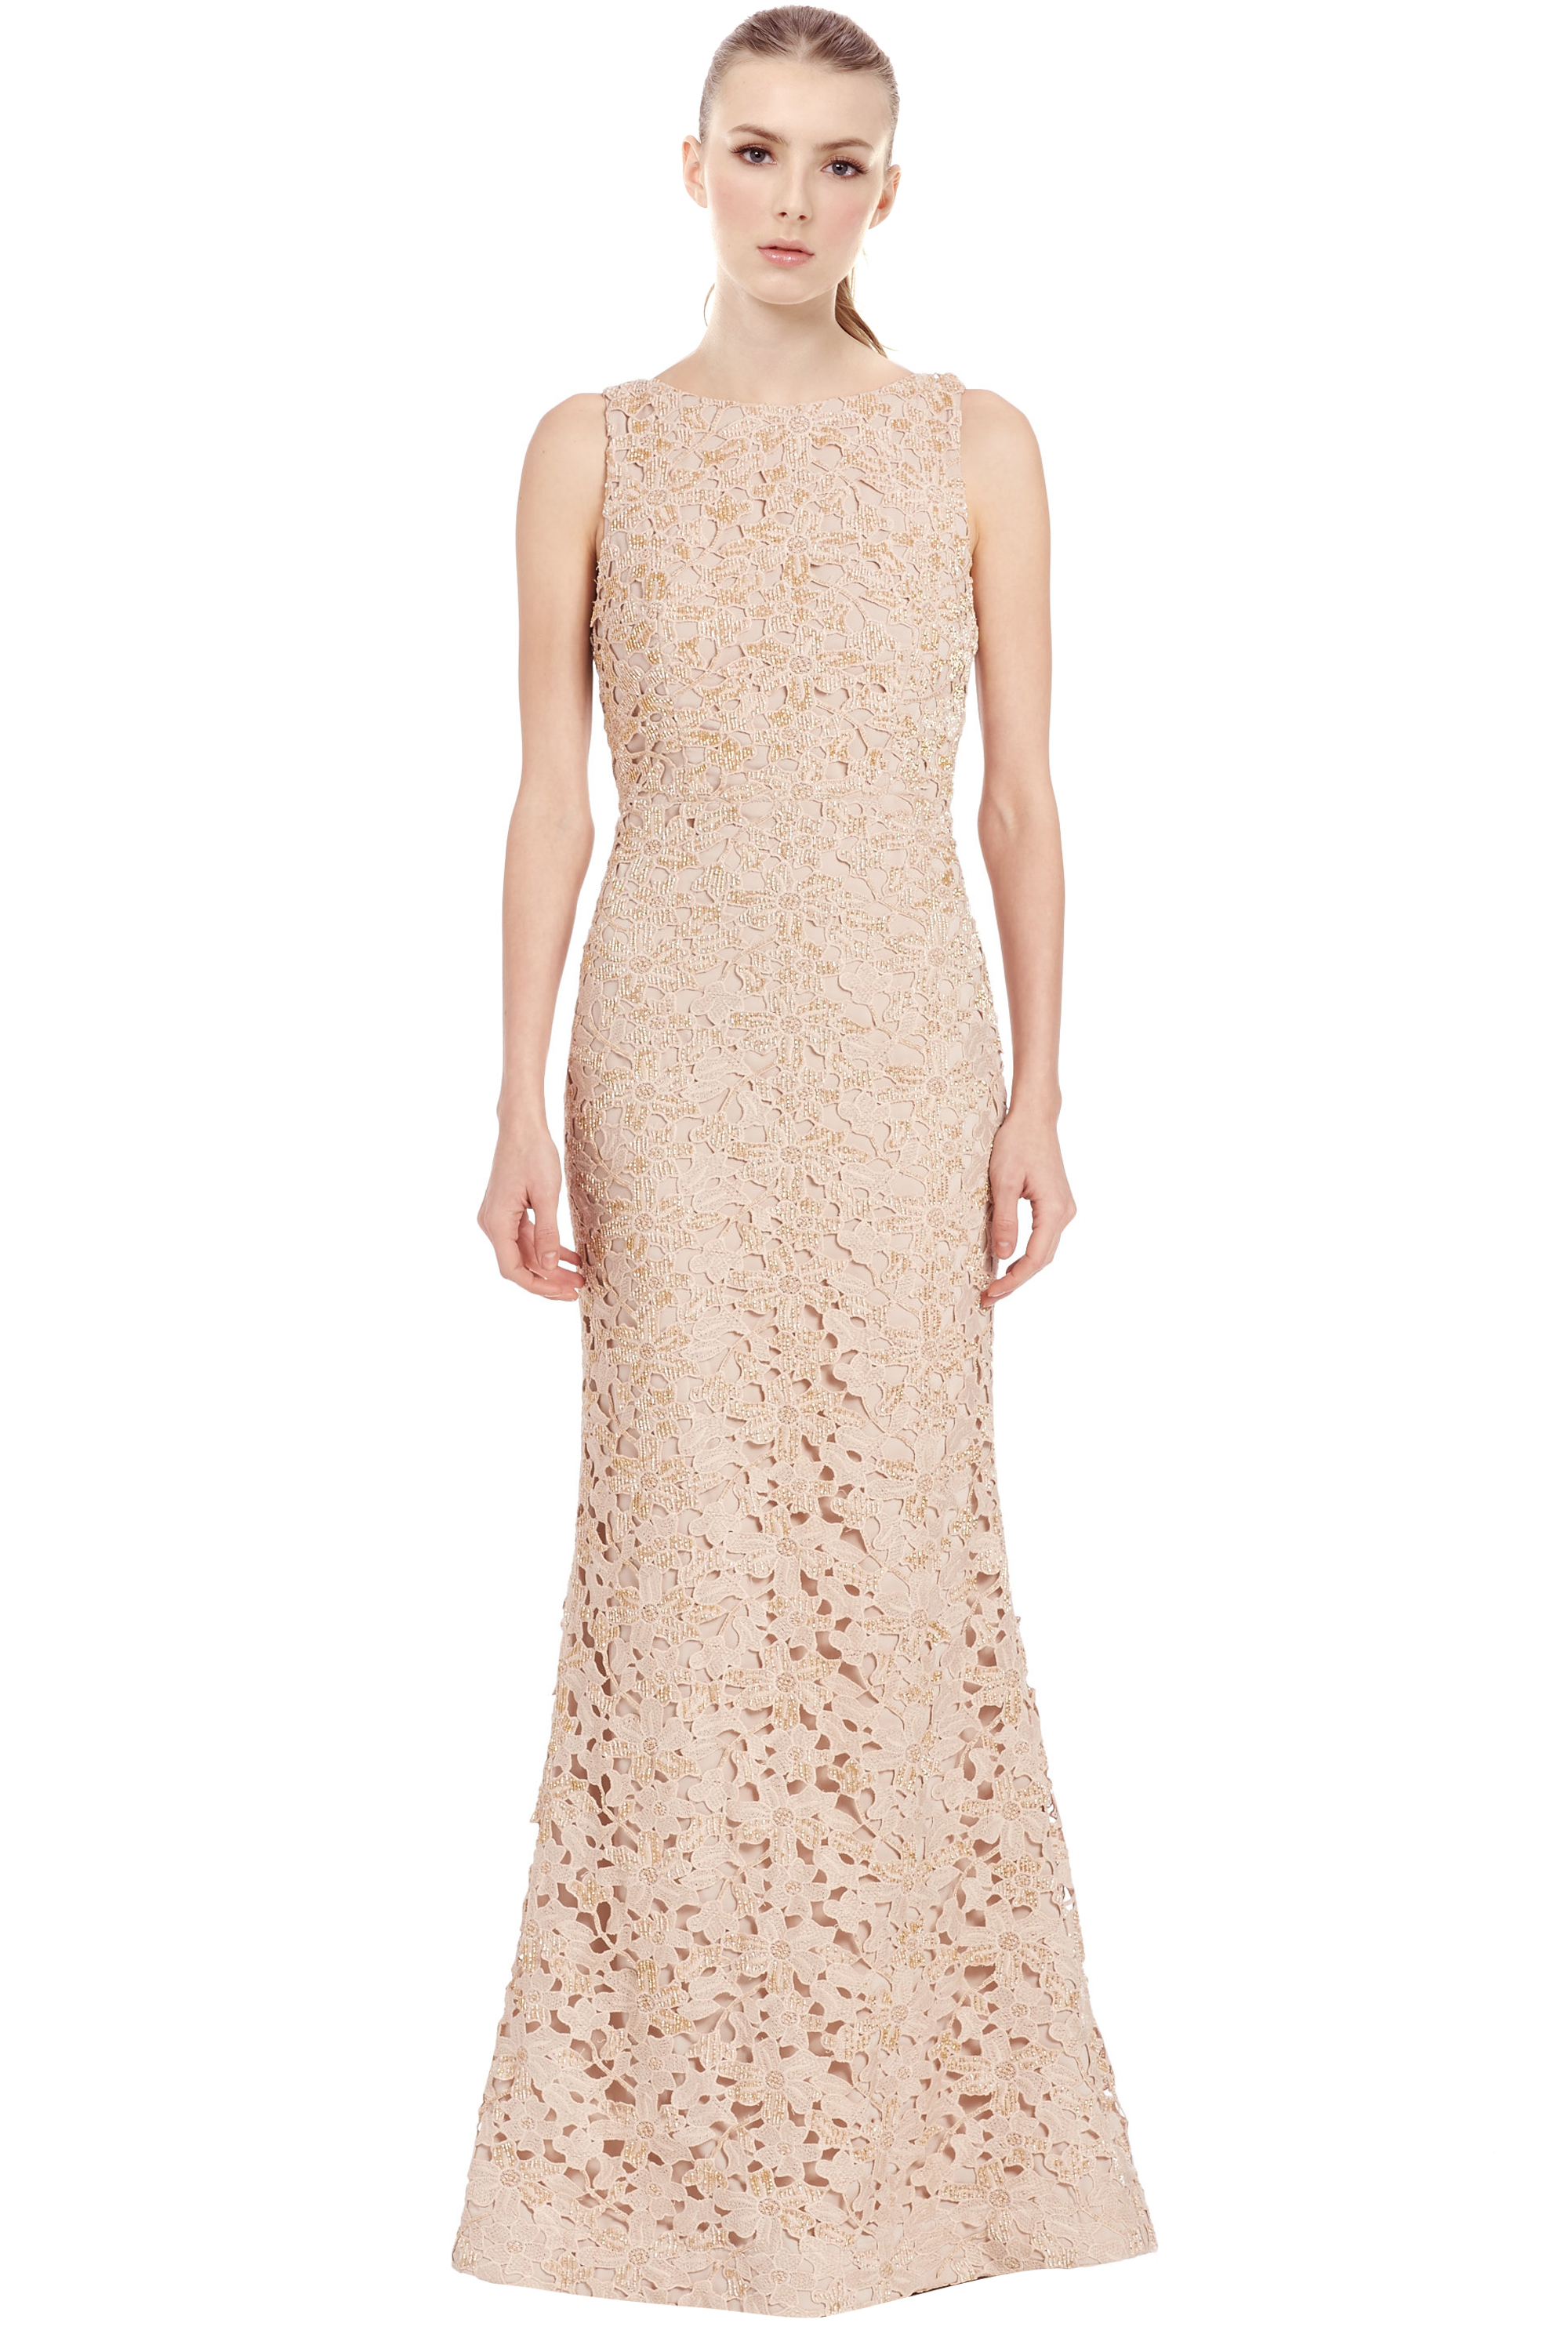 Alice & Olivia Nude Kacie Embroidered Beaded Lace Evening Gown Dress ...